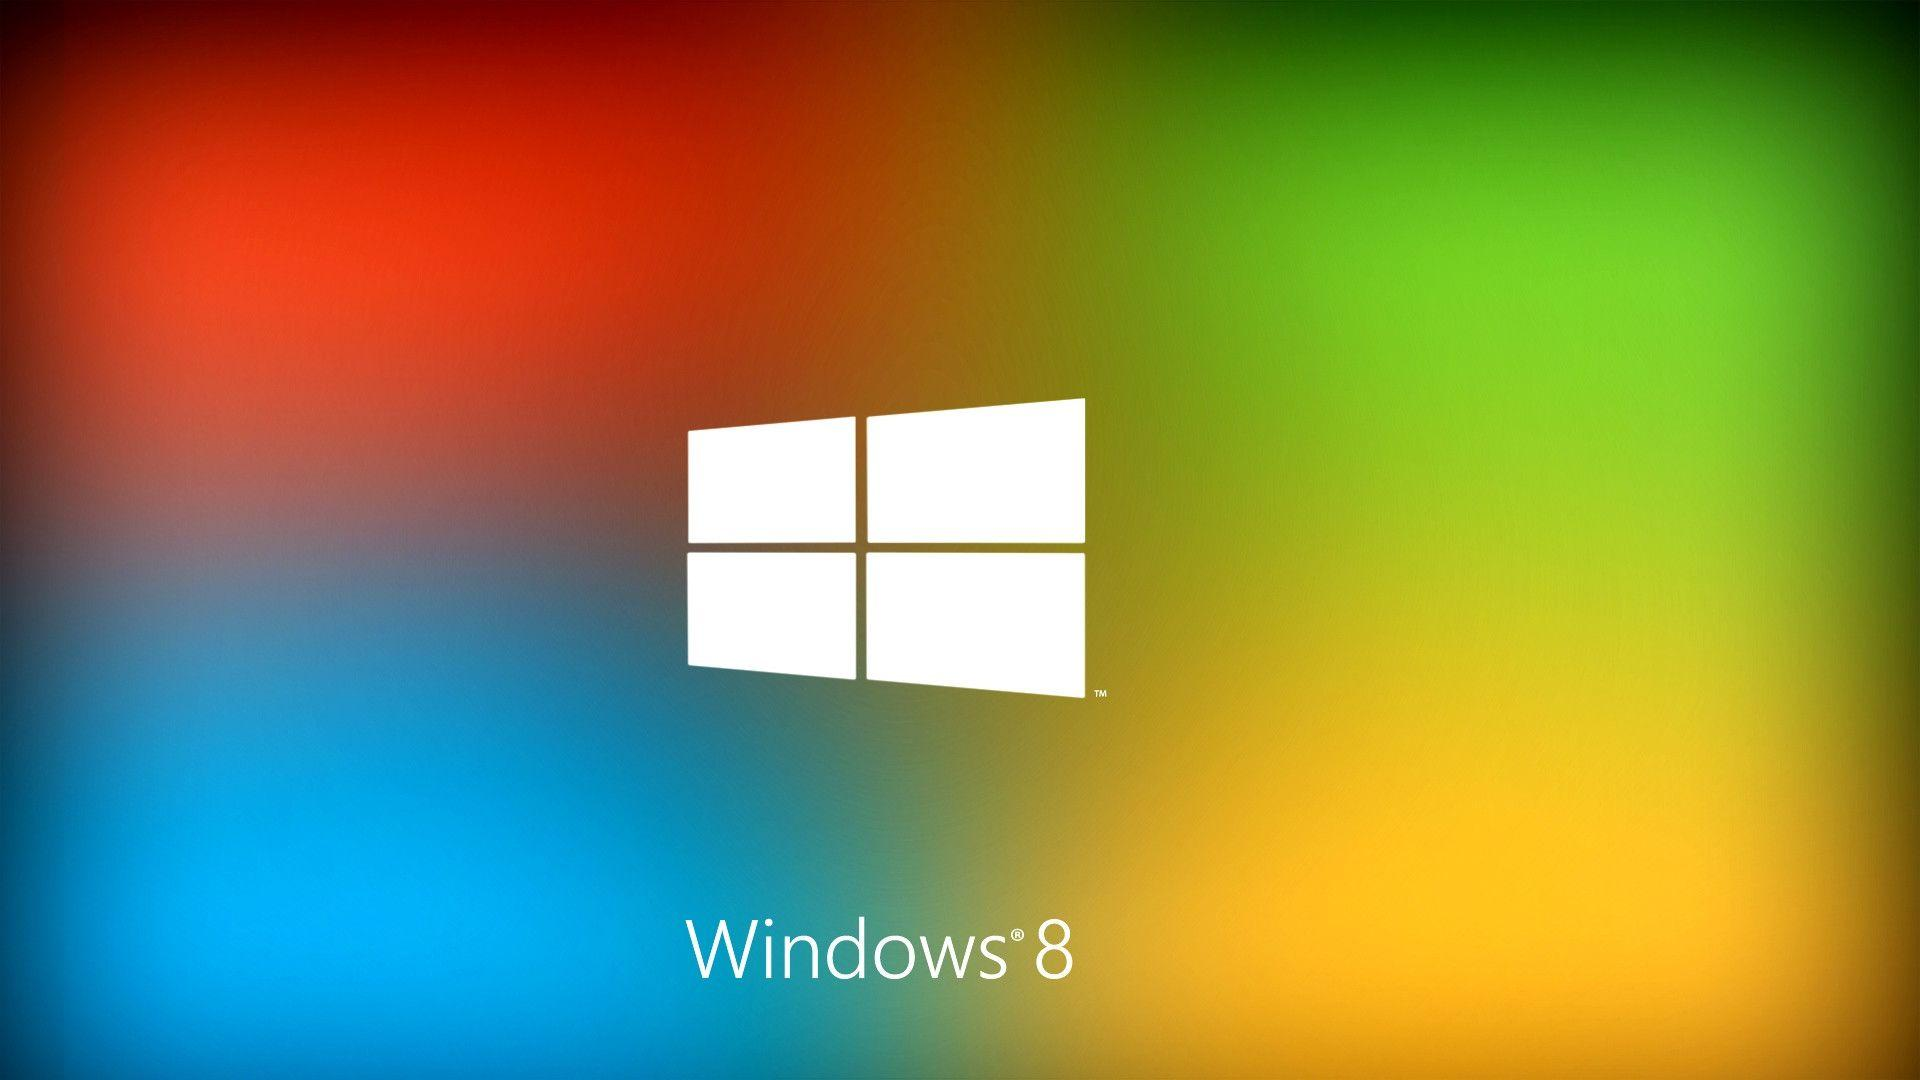 Cool Windows 8 Backgrounds Hd 20582 Full HD Wallpapers Desktop